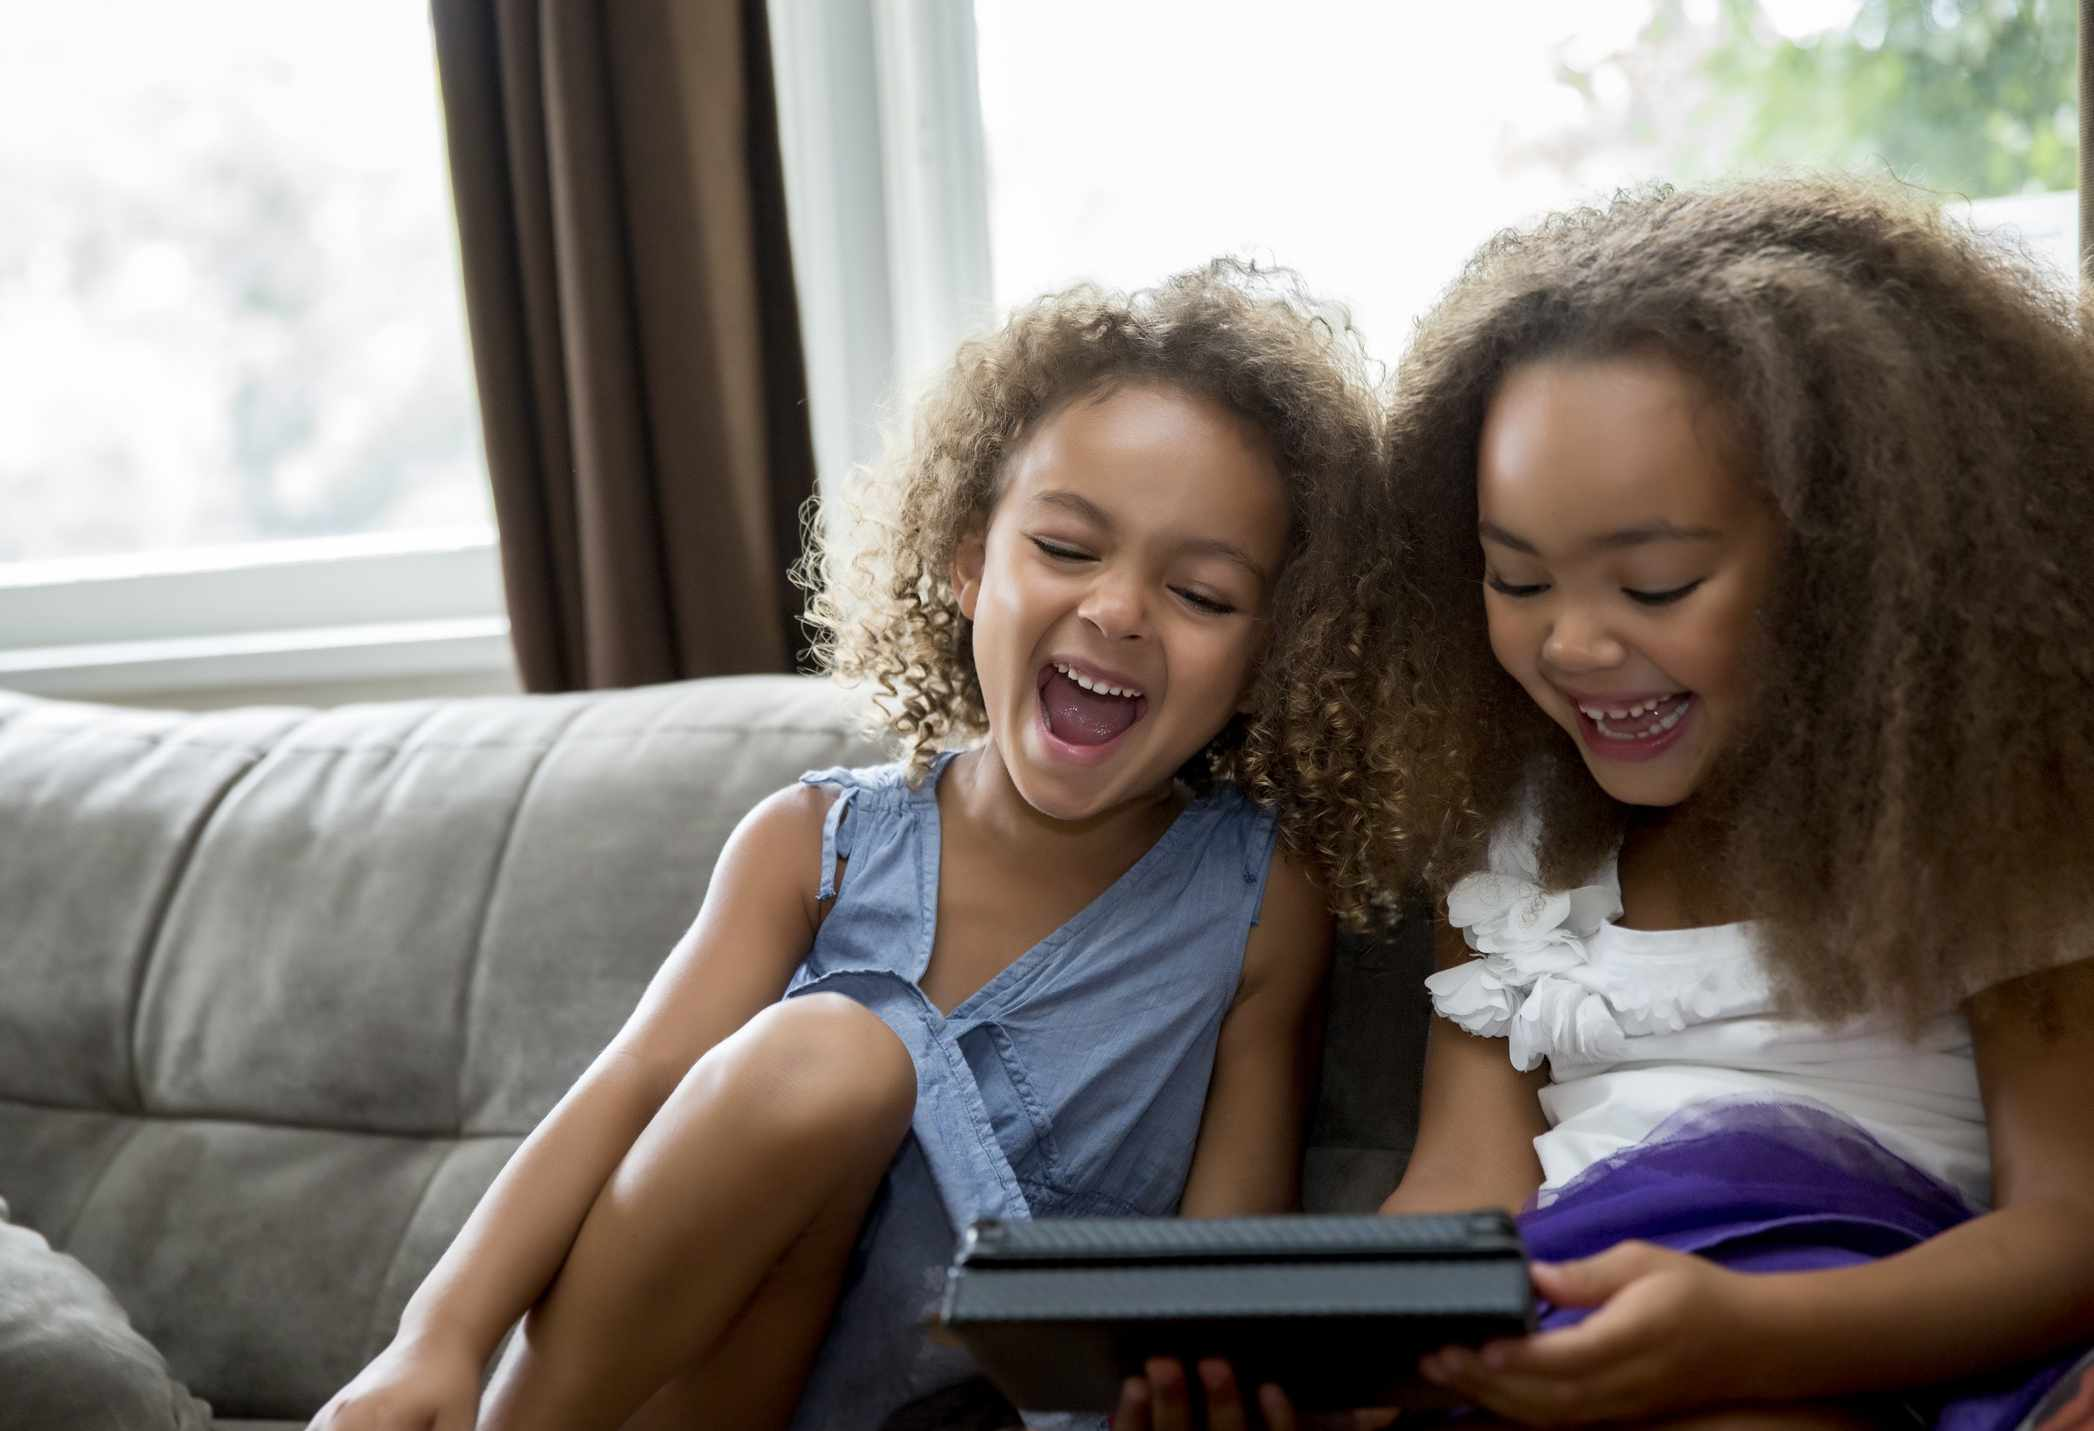 Children streaming entertainment on a tablet computer.